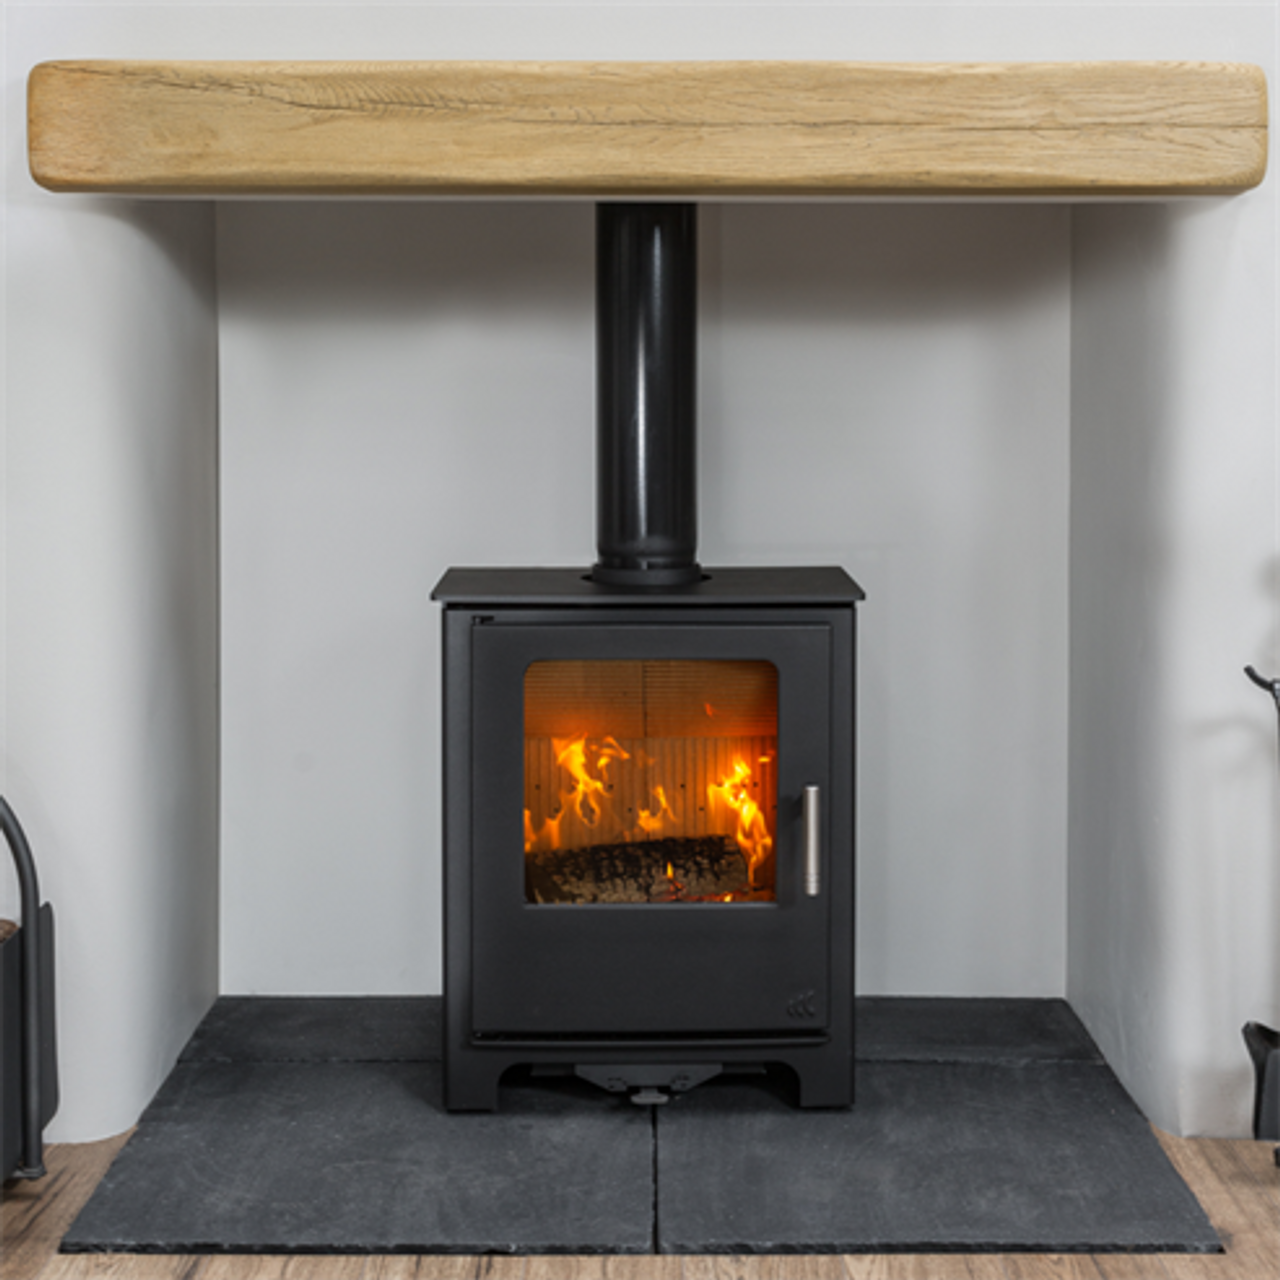 Mendip Loxton 5 Stove - FREE DELIVERY